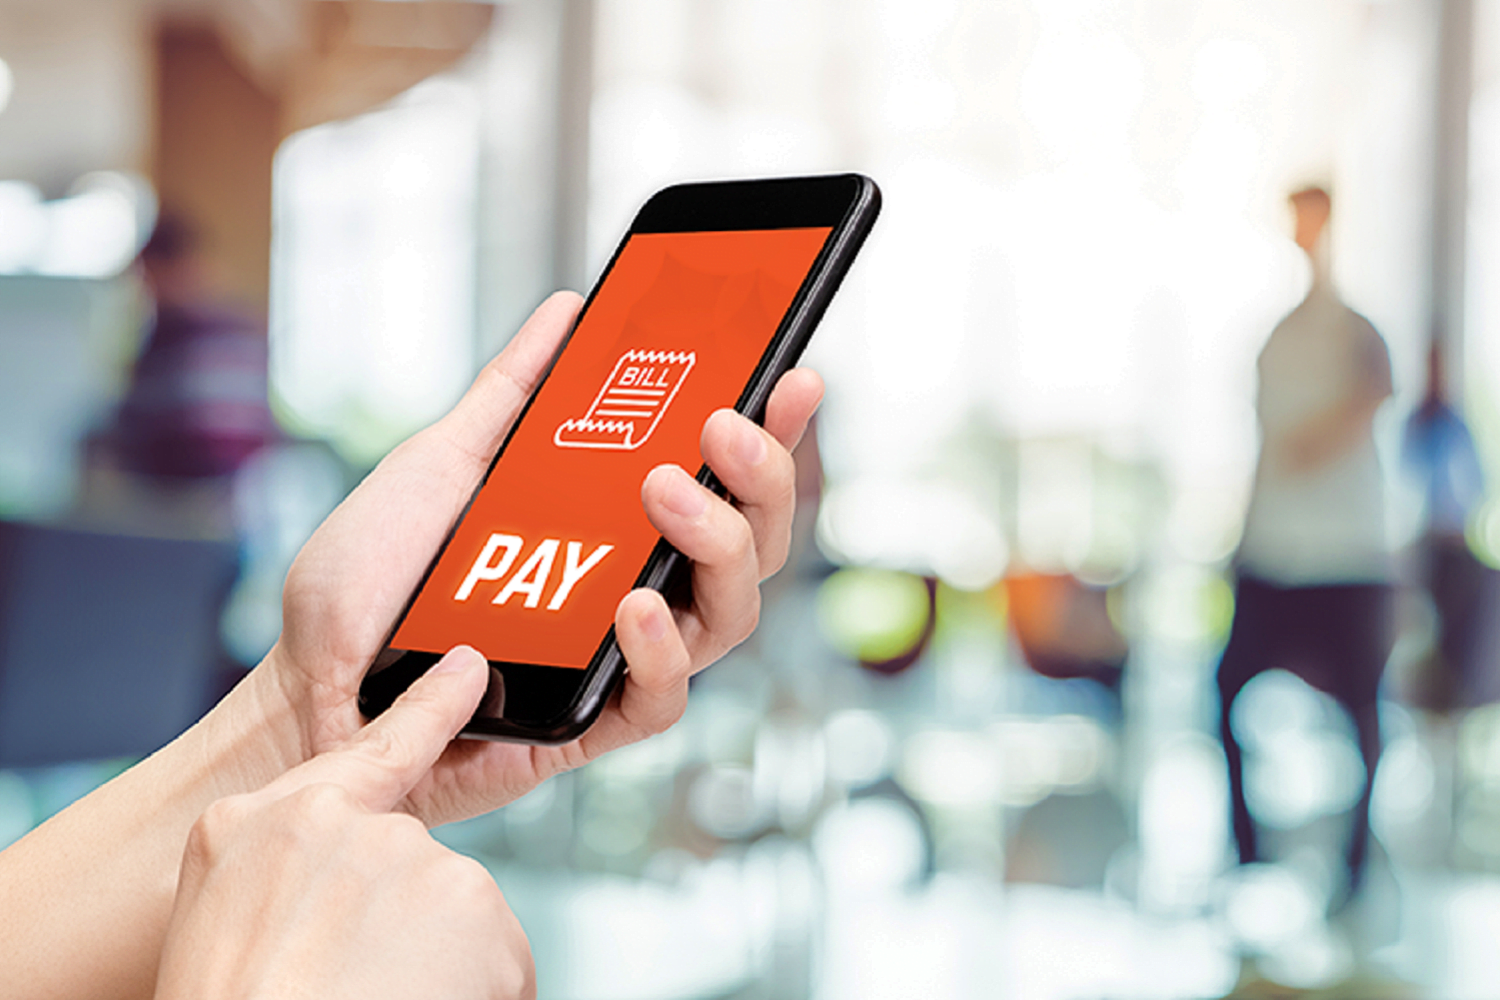 amjad-khanche-discusses-money-exchange-with-a-payment-app